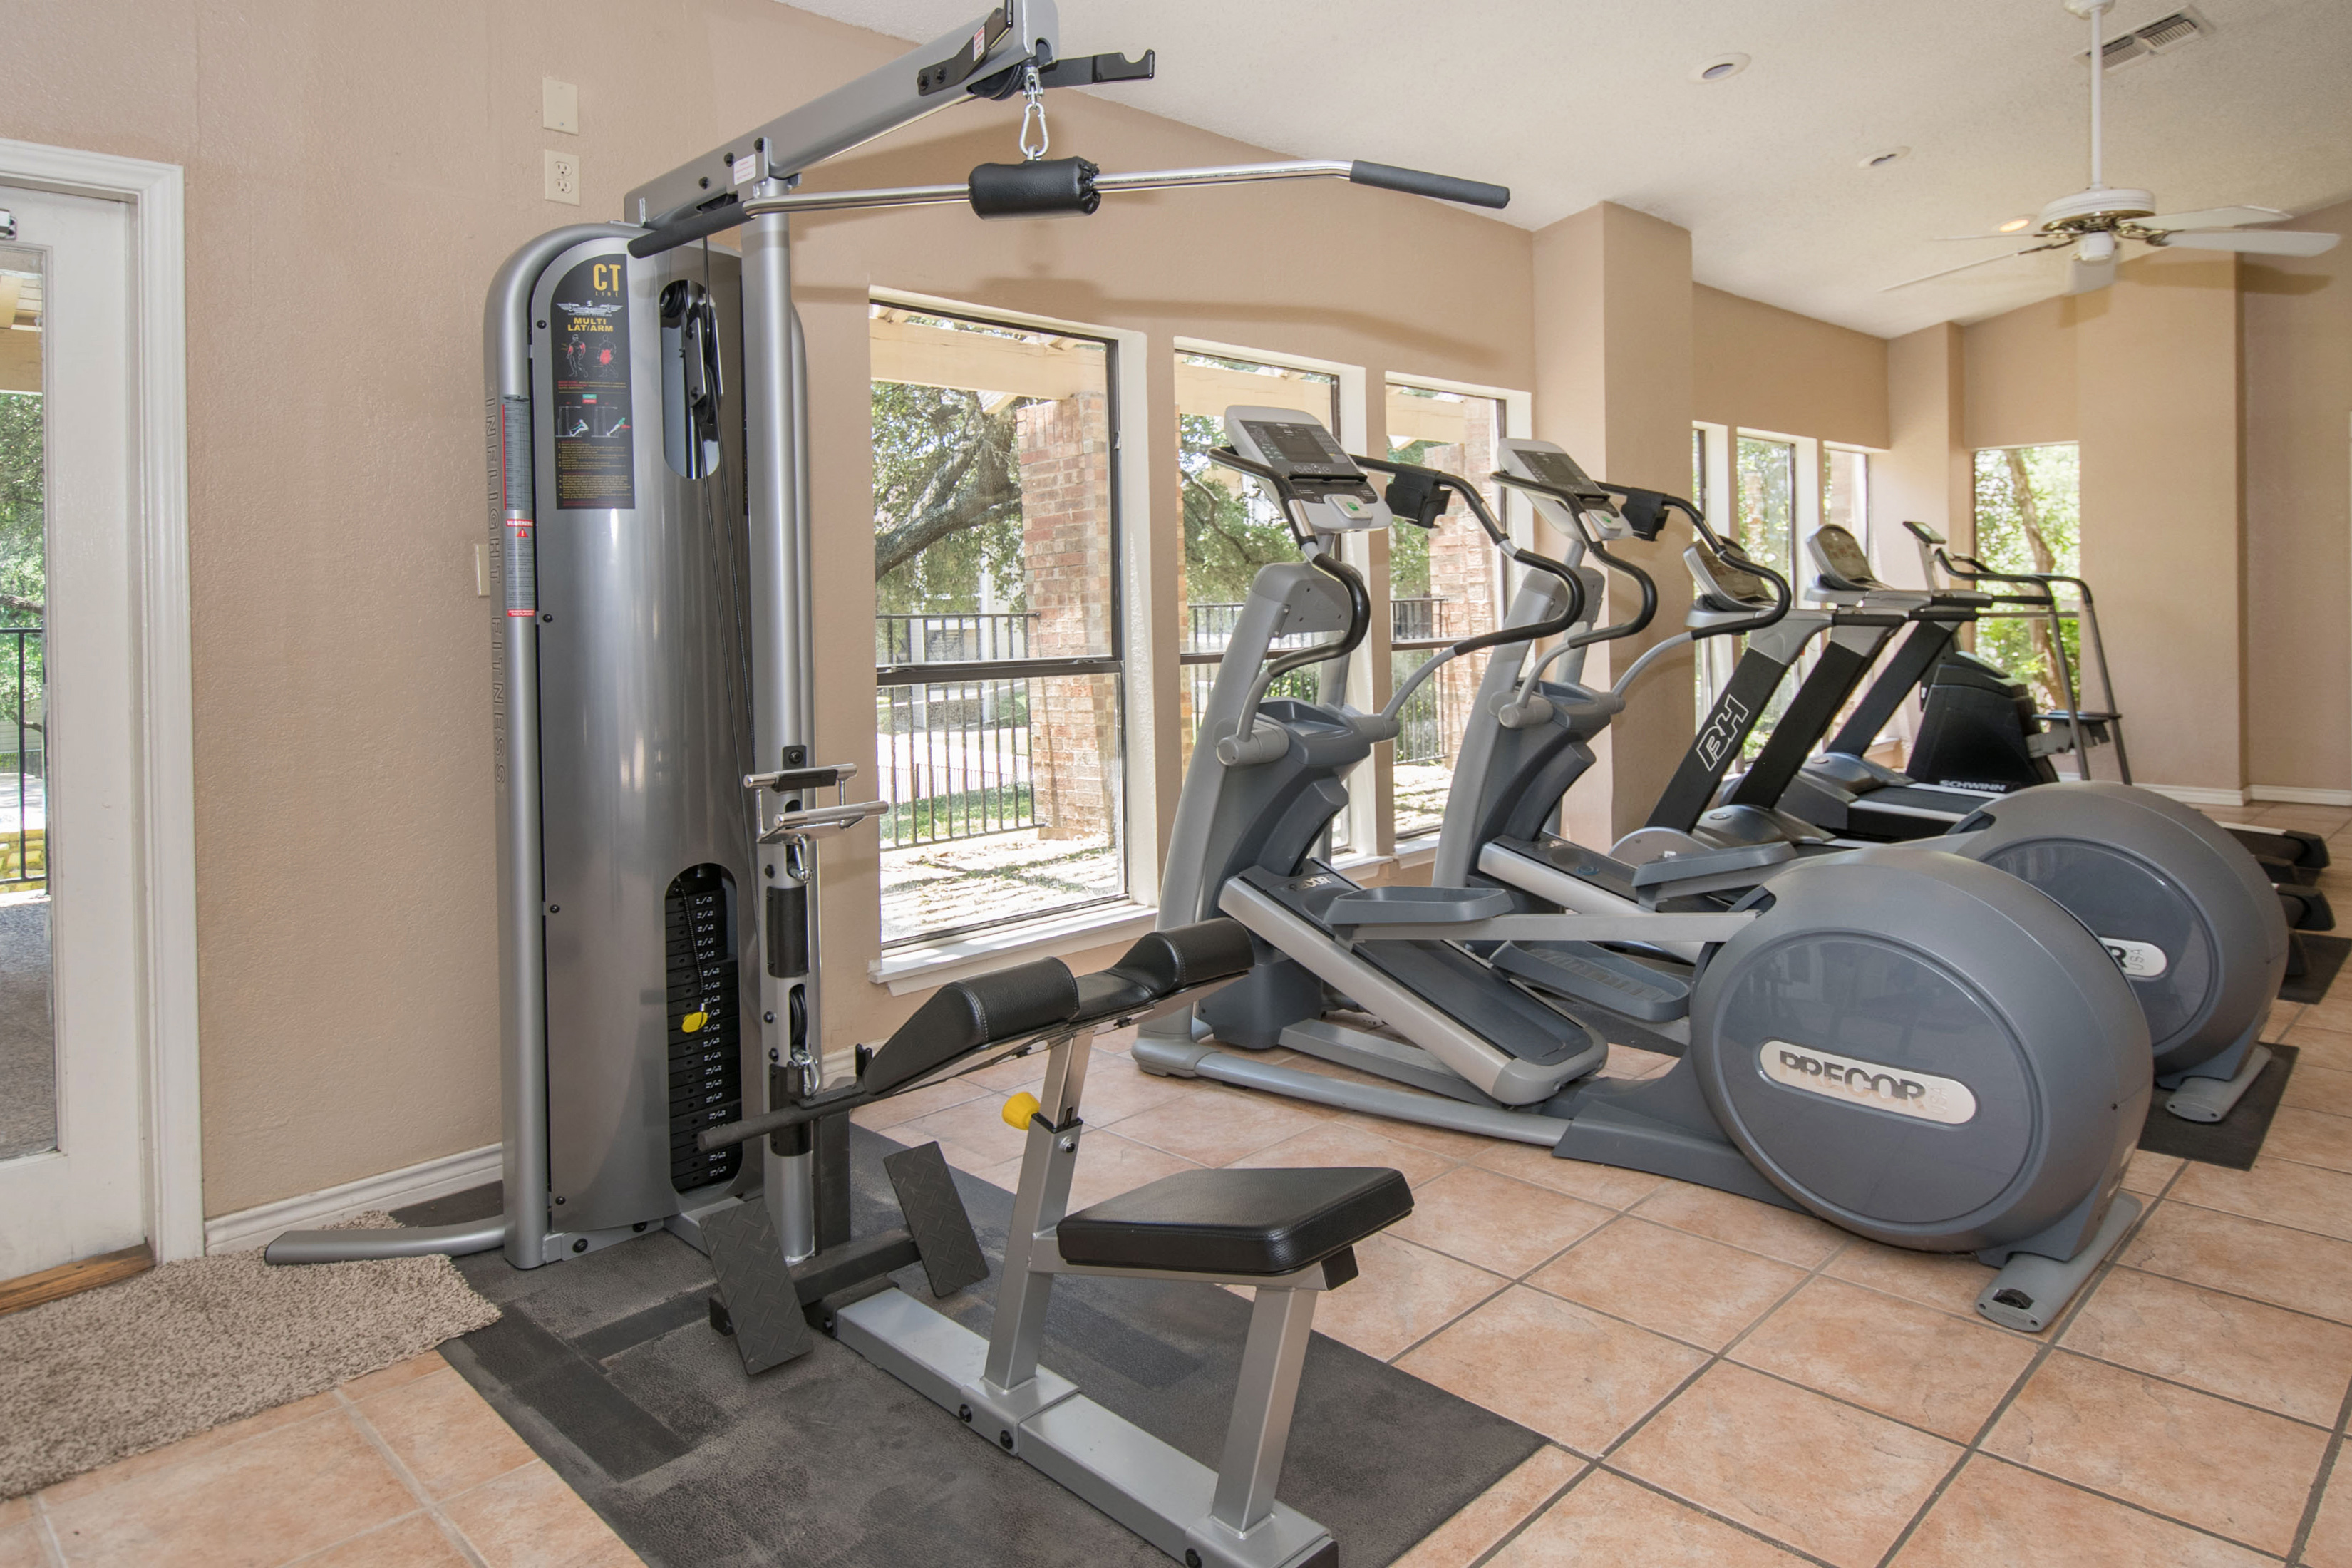 Cardio Equipment at Sunset Canyon, San Antonio, Texas